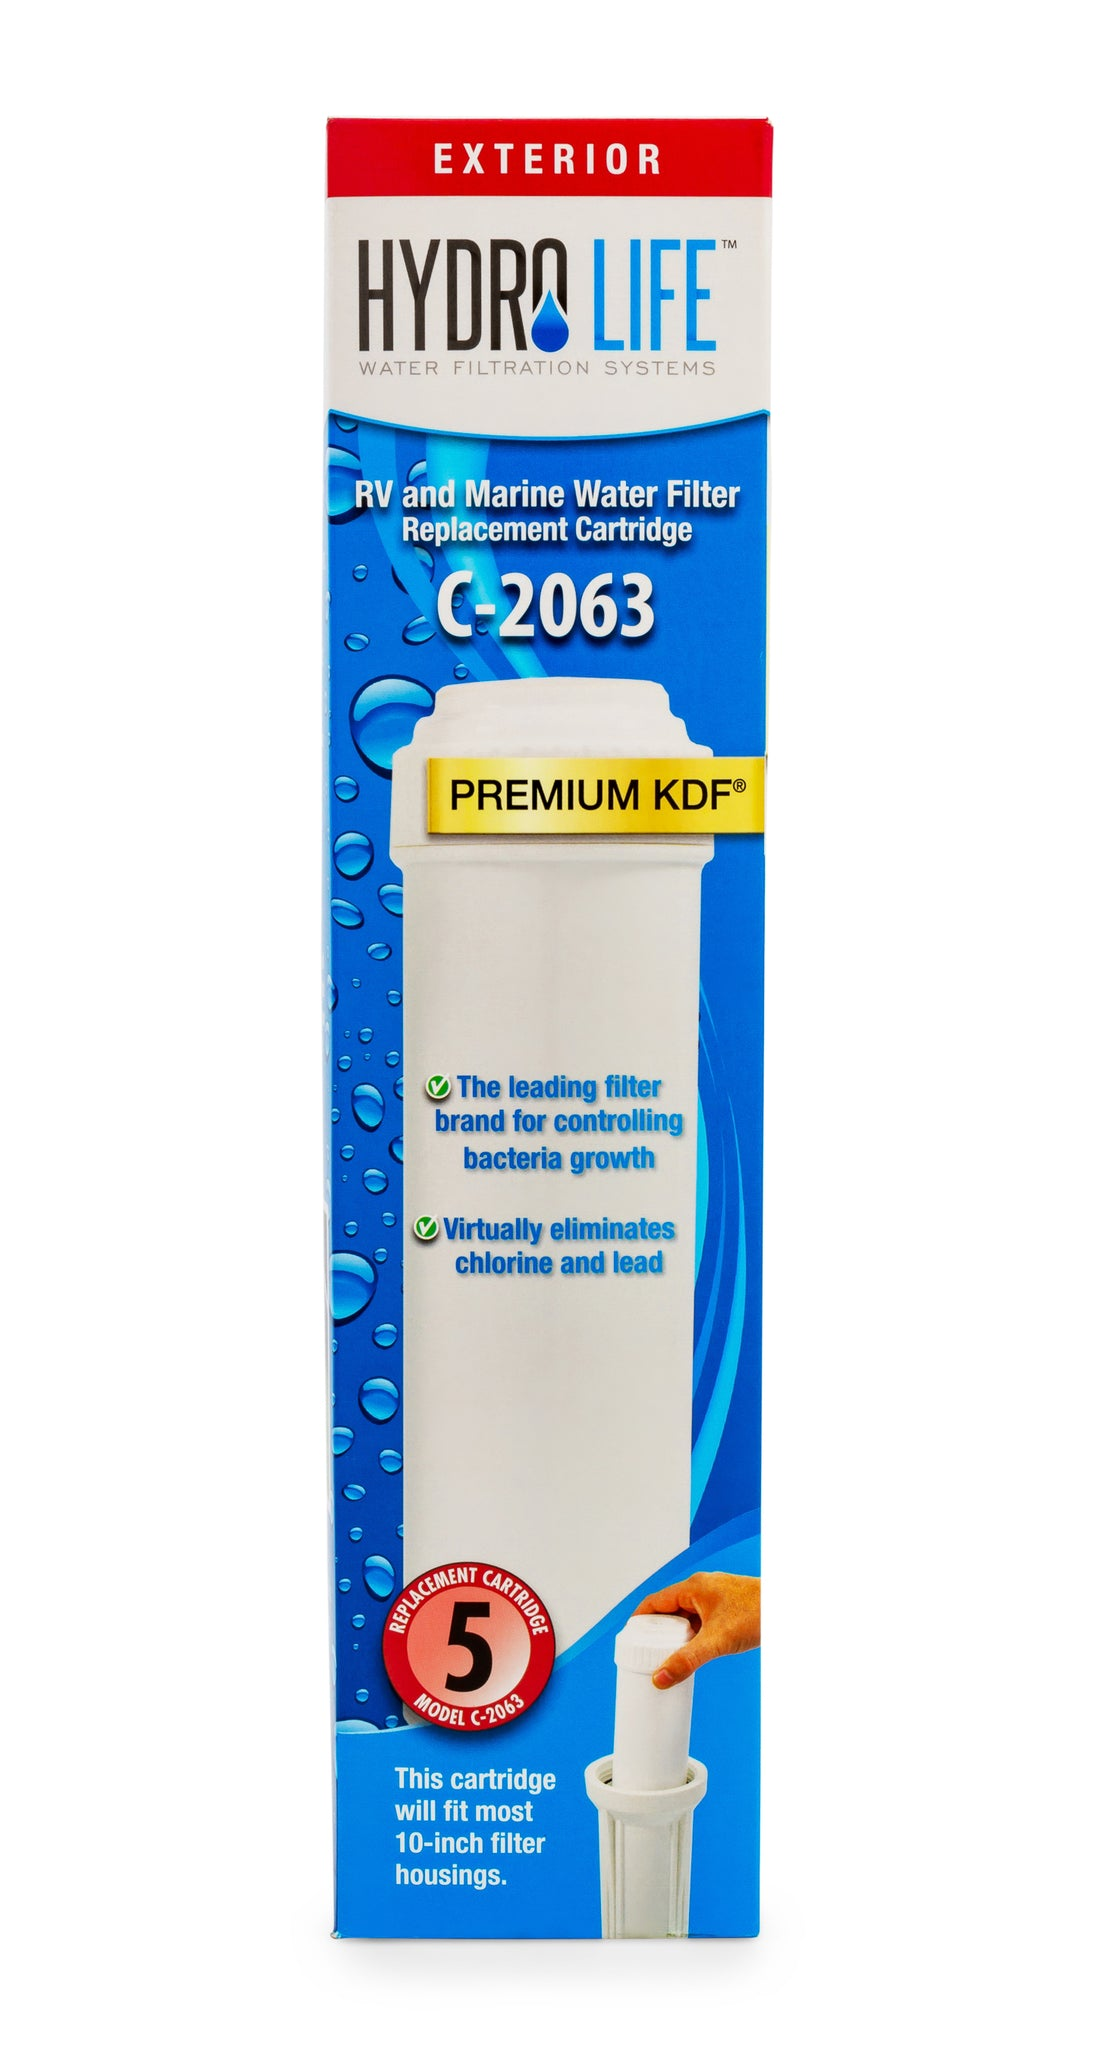 Hydro Life Commercial 2063 - Replacement Cartridge (12 per case)